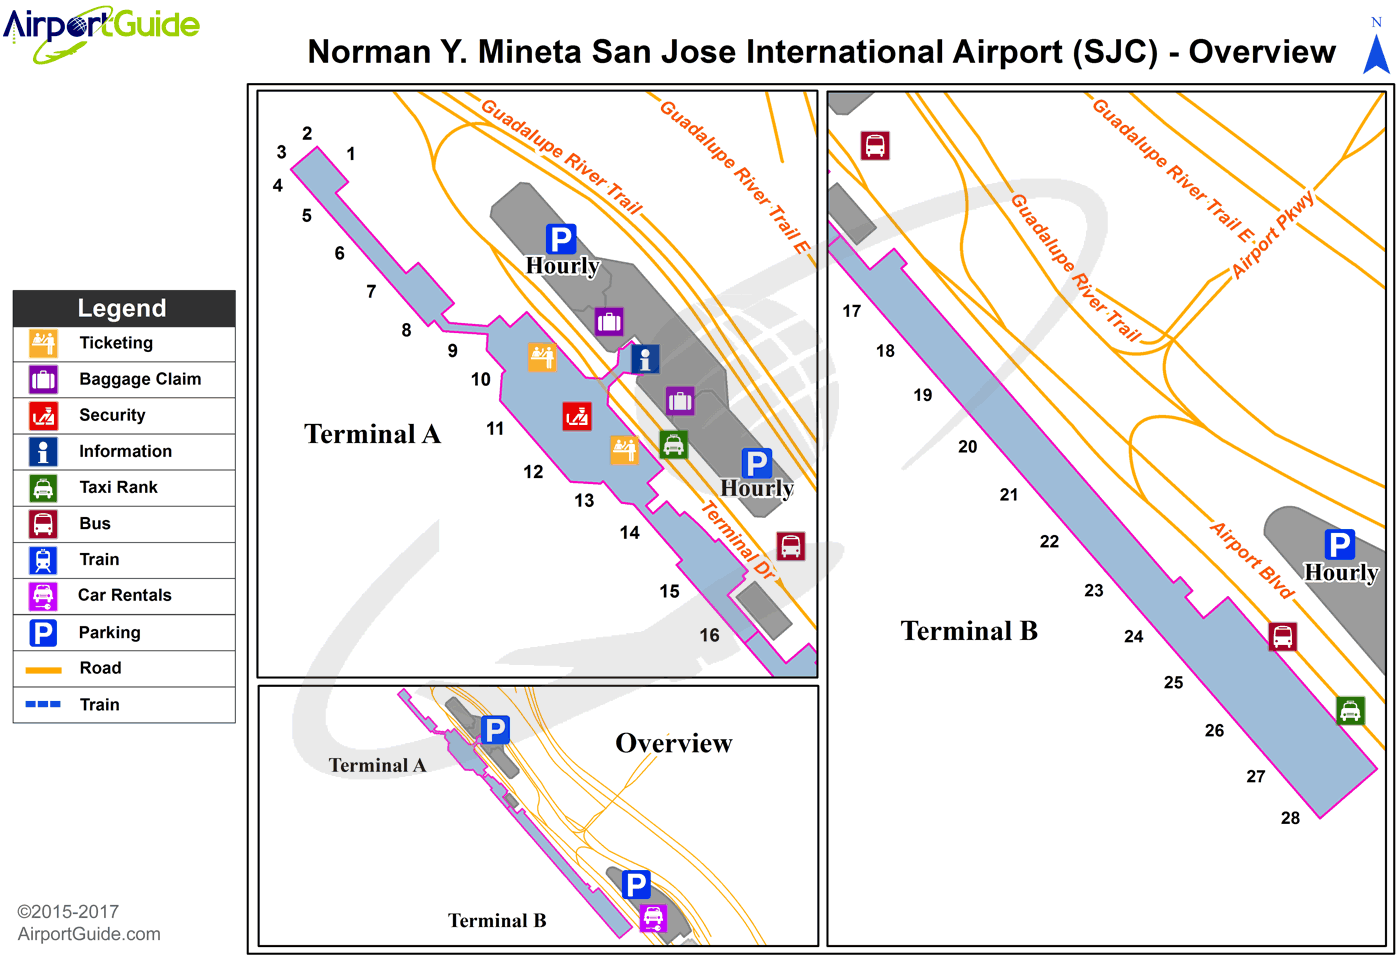 San Jose - Norman Y Mineta San Jose International (SJC) Airport Terminal Map - Overview